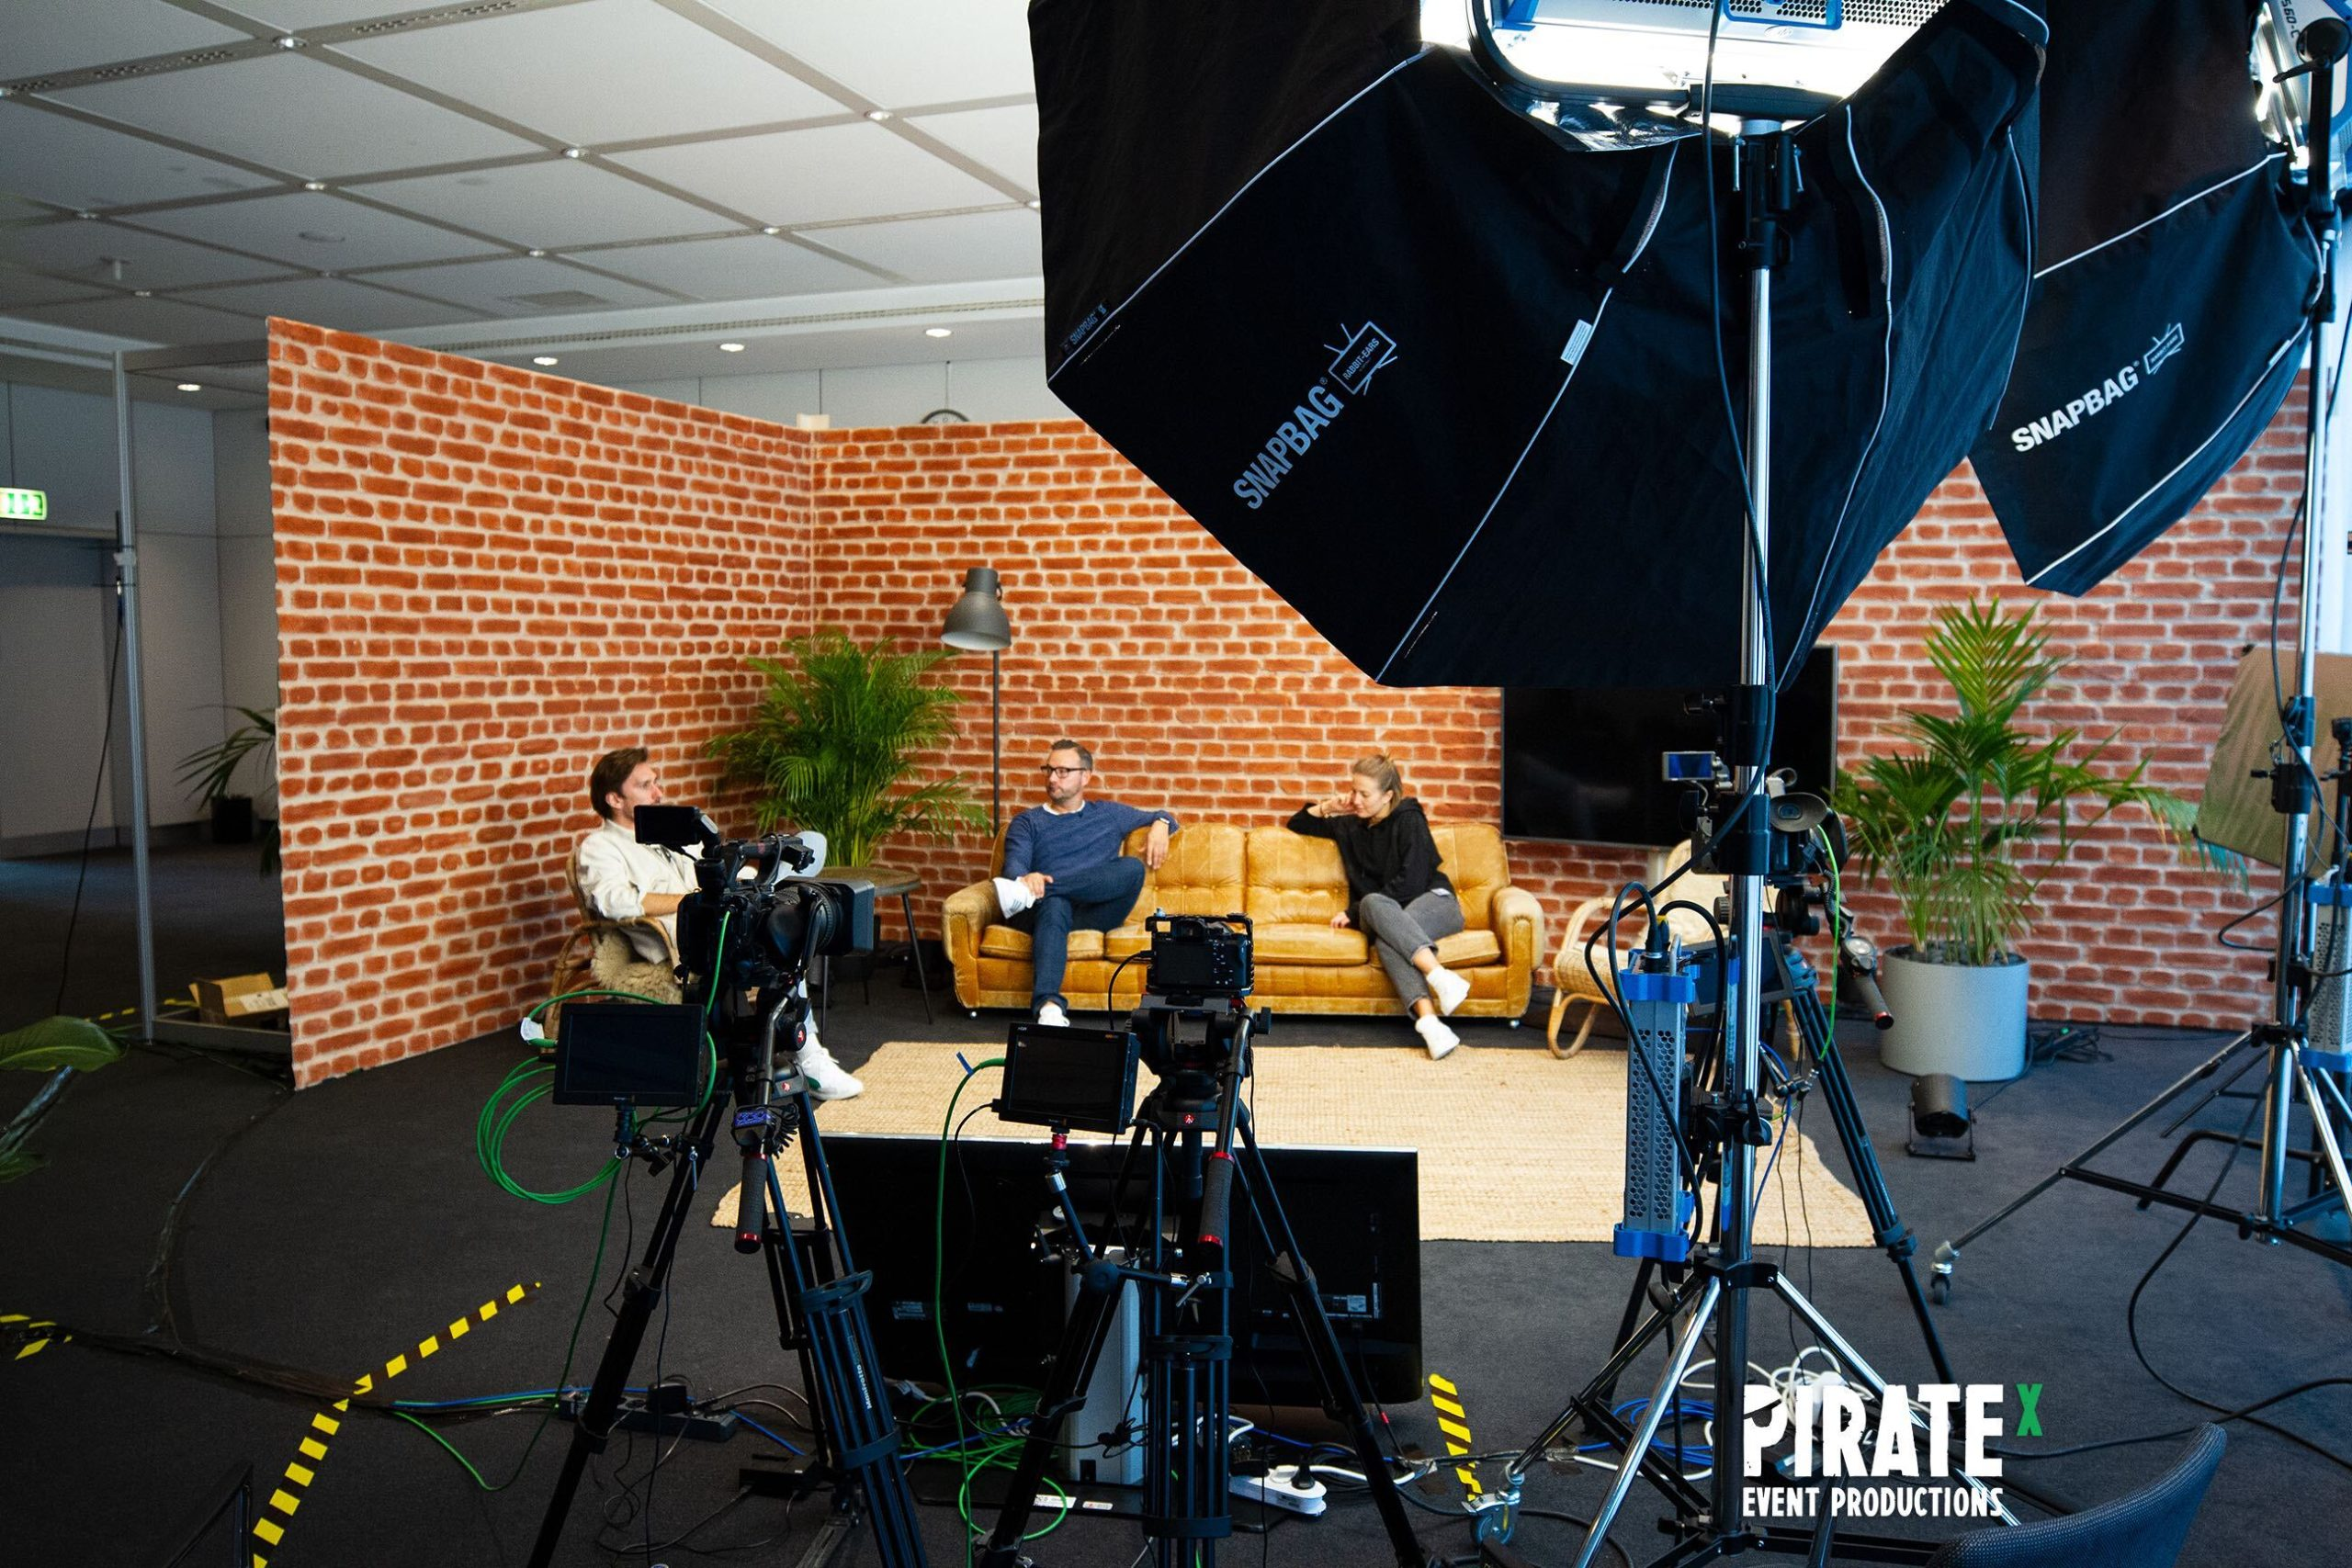 Behind the scene of the PIRATEx online event production for the Henkel Collaboration Day 2020